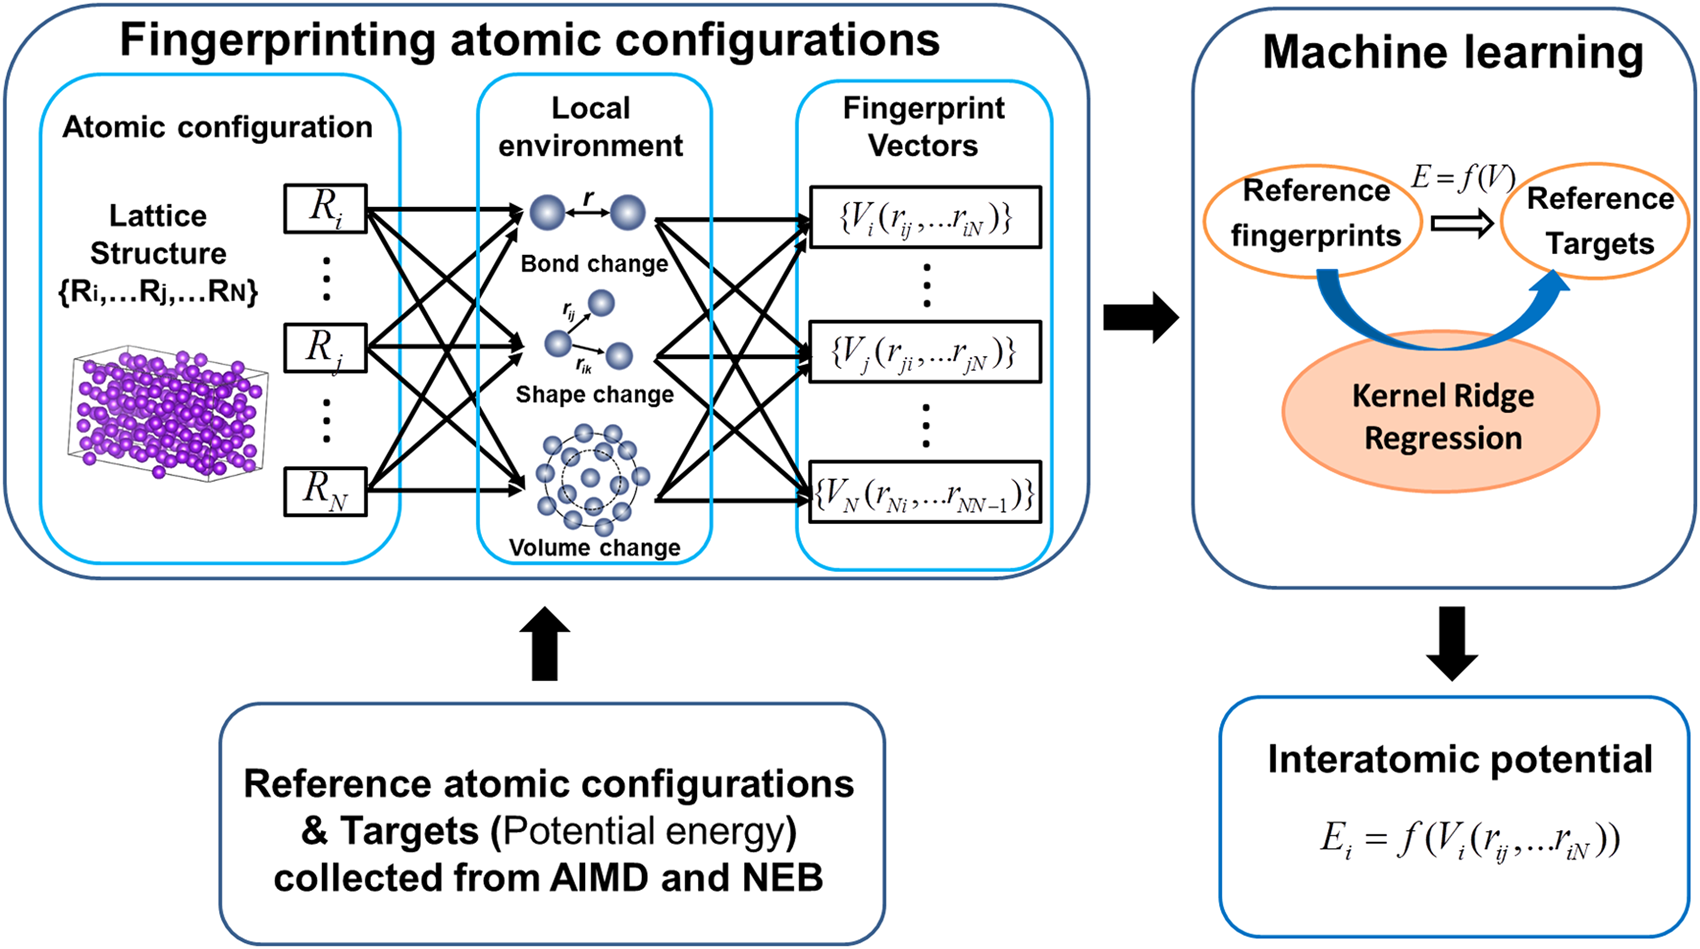 Developing an interatomic potential for martensitic phase